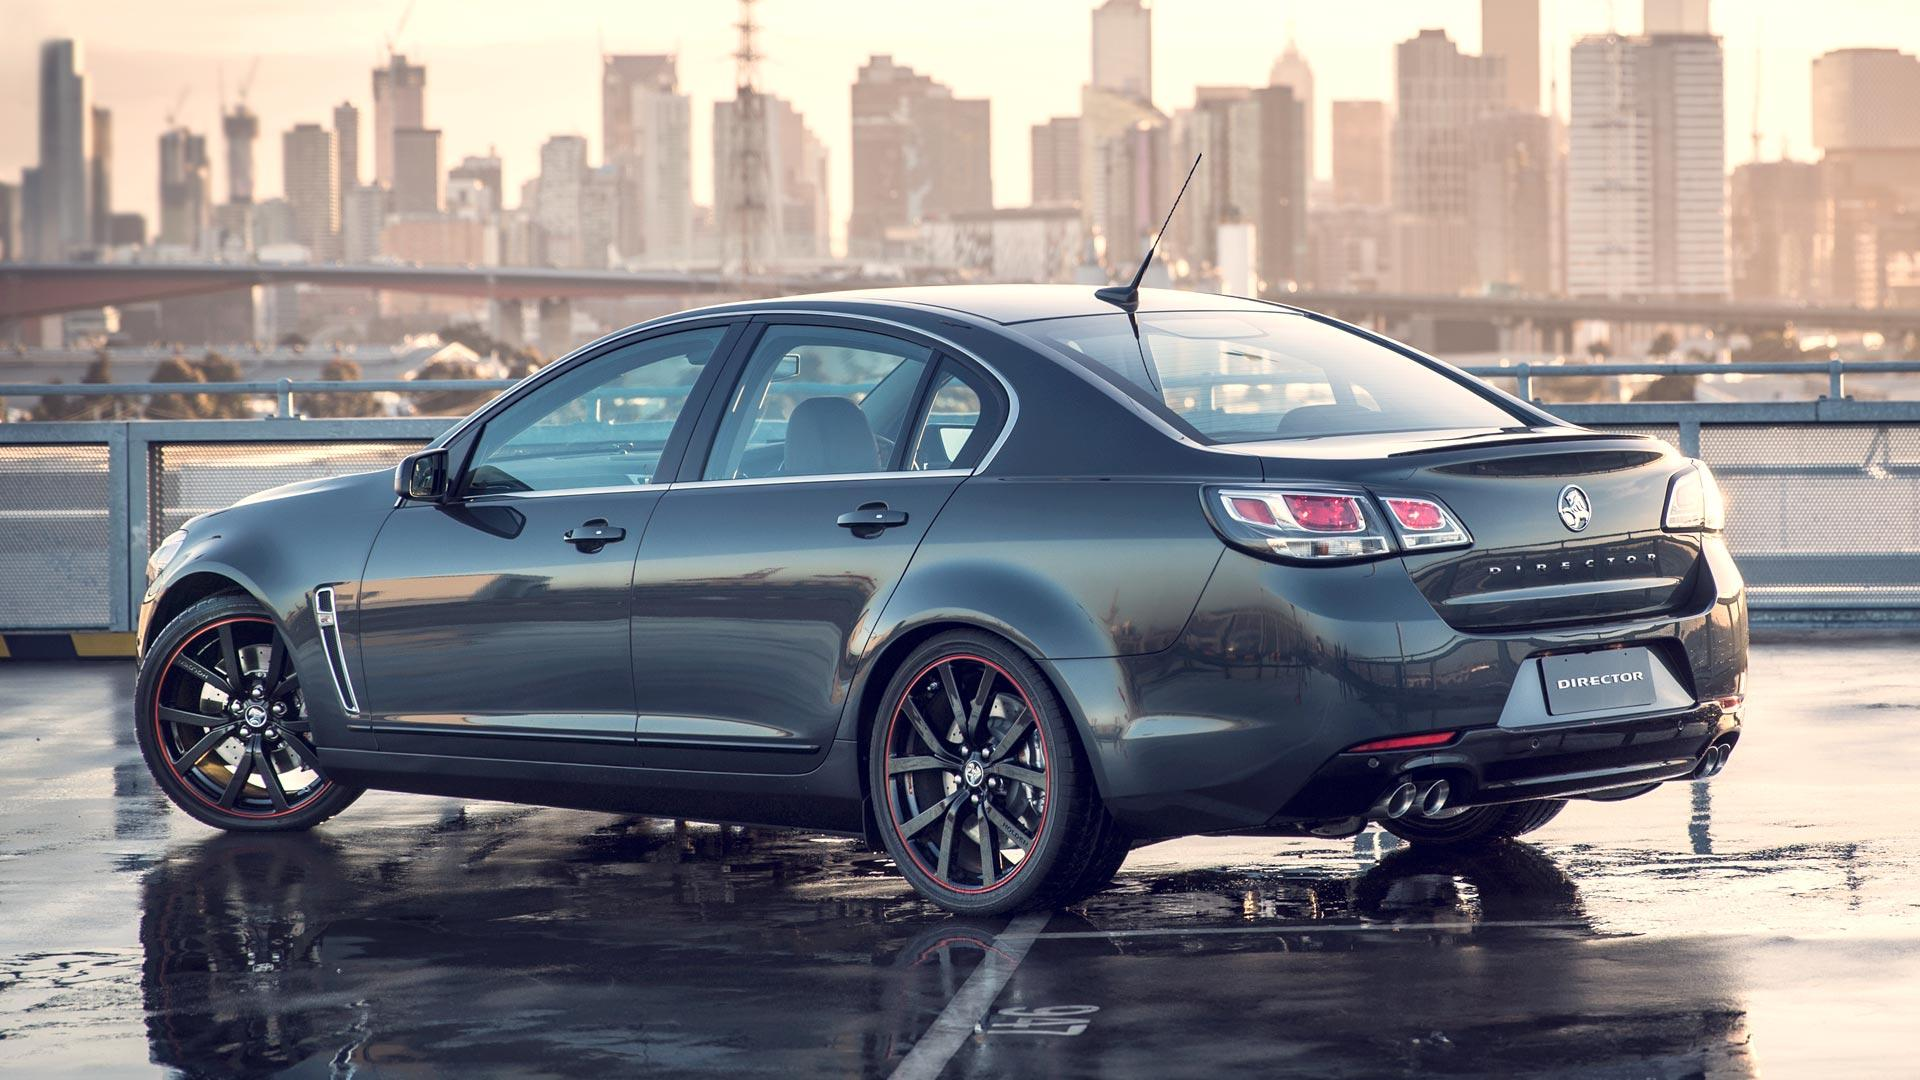 2017 holden commodore motorsport director magnum special editions announced performancedrive. Black Bedroom Furniture Sets. Home Design Ideas